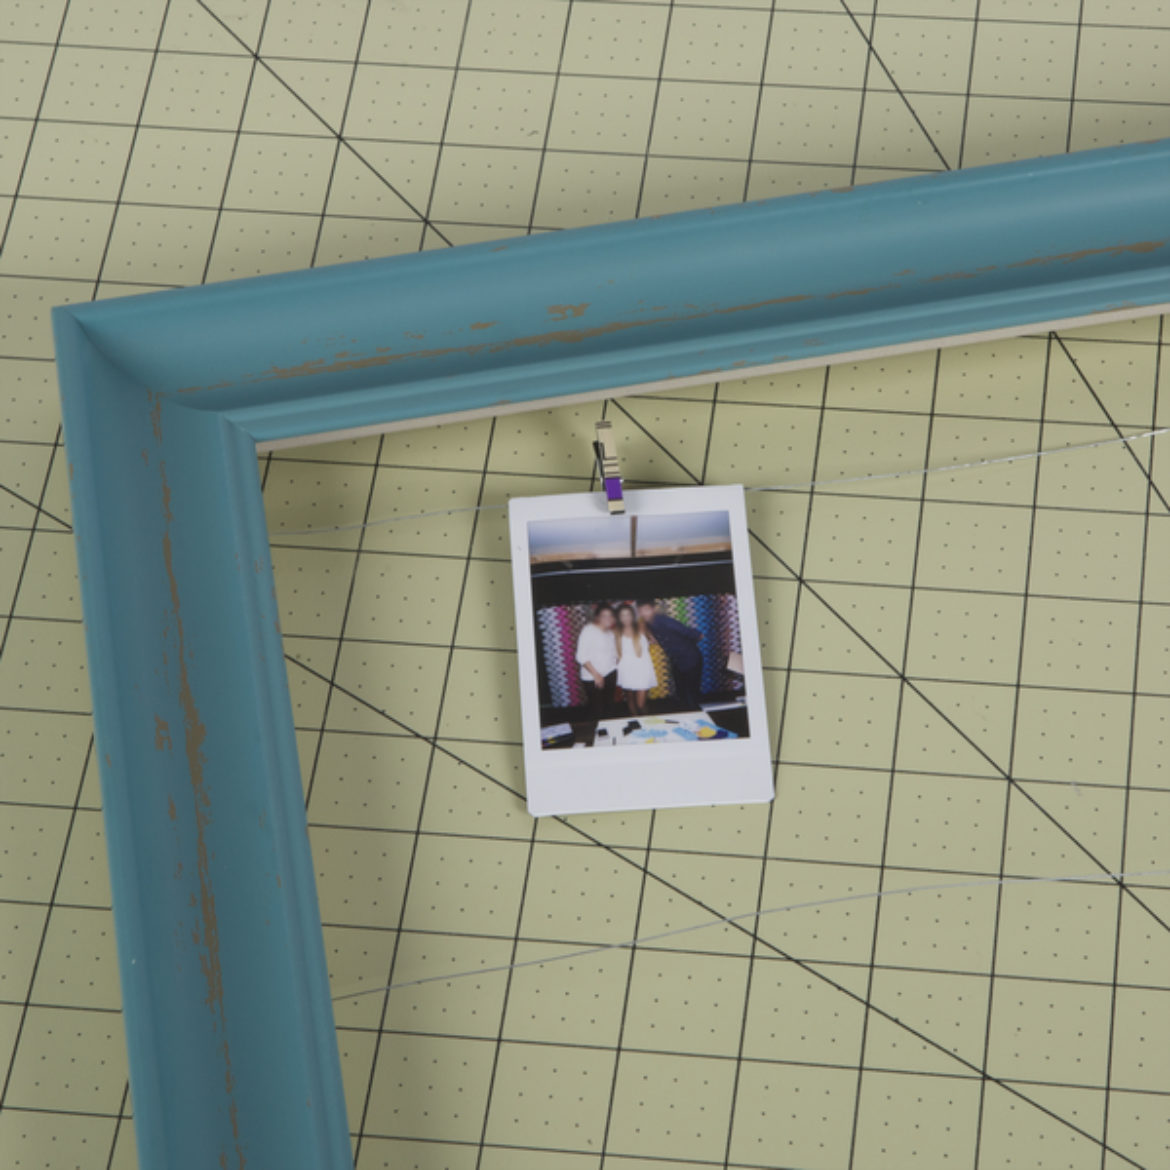 Letters and shapes attached to the frame, with a picture hung from the clothes pin that is attached to the wire strung across the frame